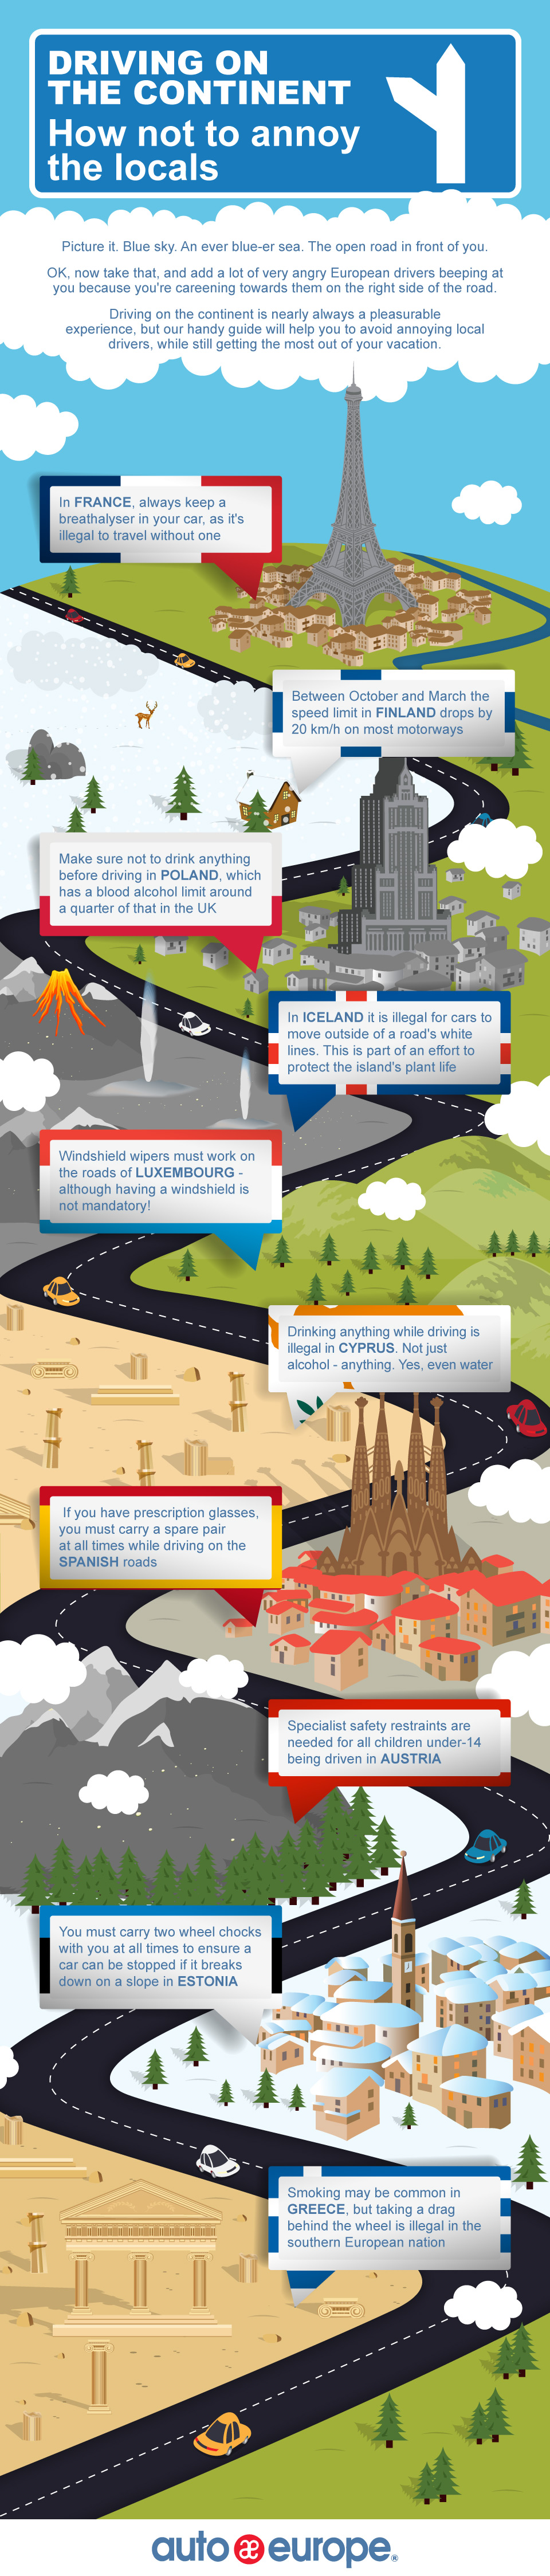 Driving Rules in Europe: Some Bizarre Facts - Infographic